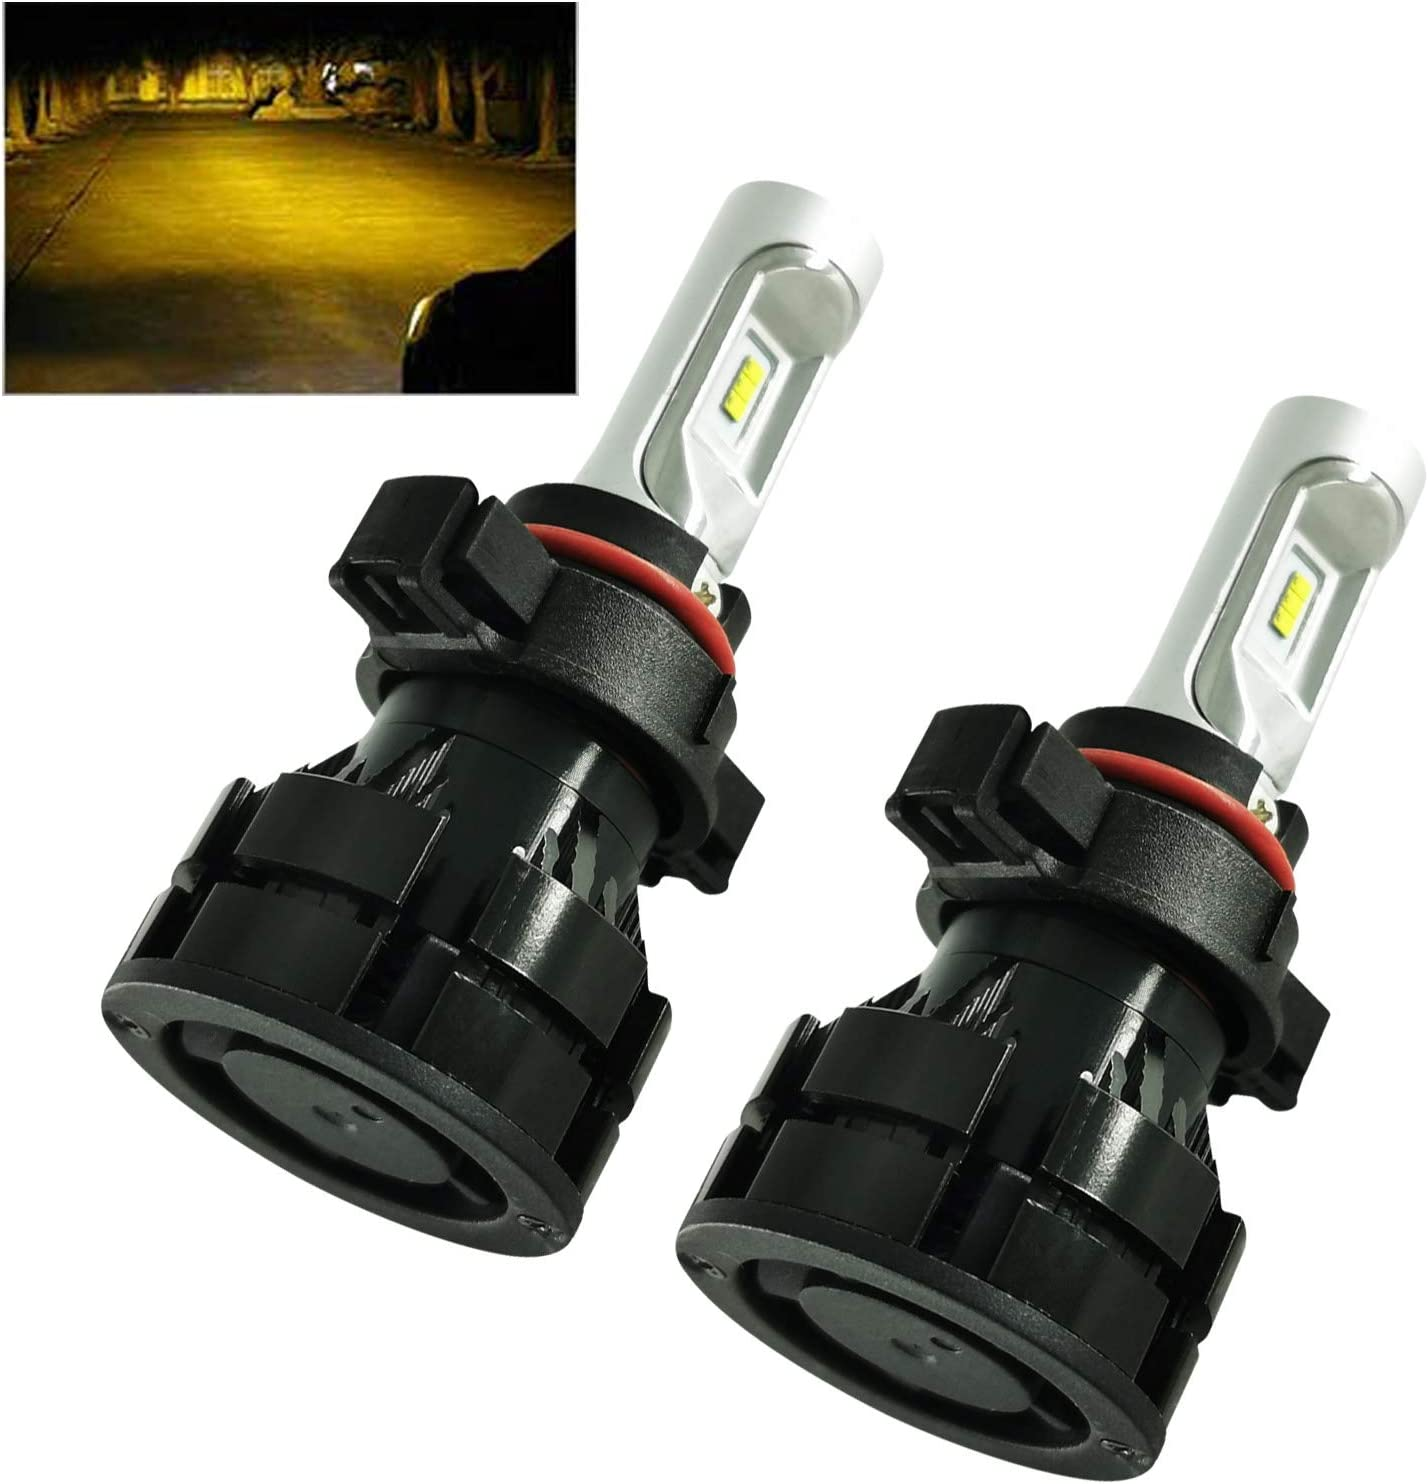 5202 LED Headlight Bulbs 3000K Golden Yellow 60W 10000 Lumens Adjustable Beam Extremely Bright CSP Chips 5200 5201 9009 PSX24W Fog Light Bulbs All-in-One Conversion Kit